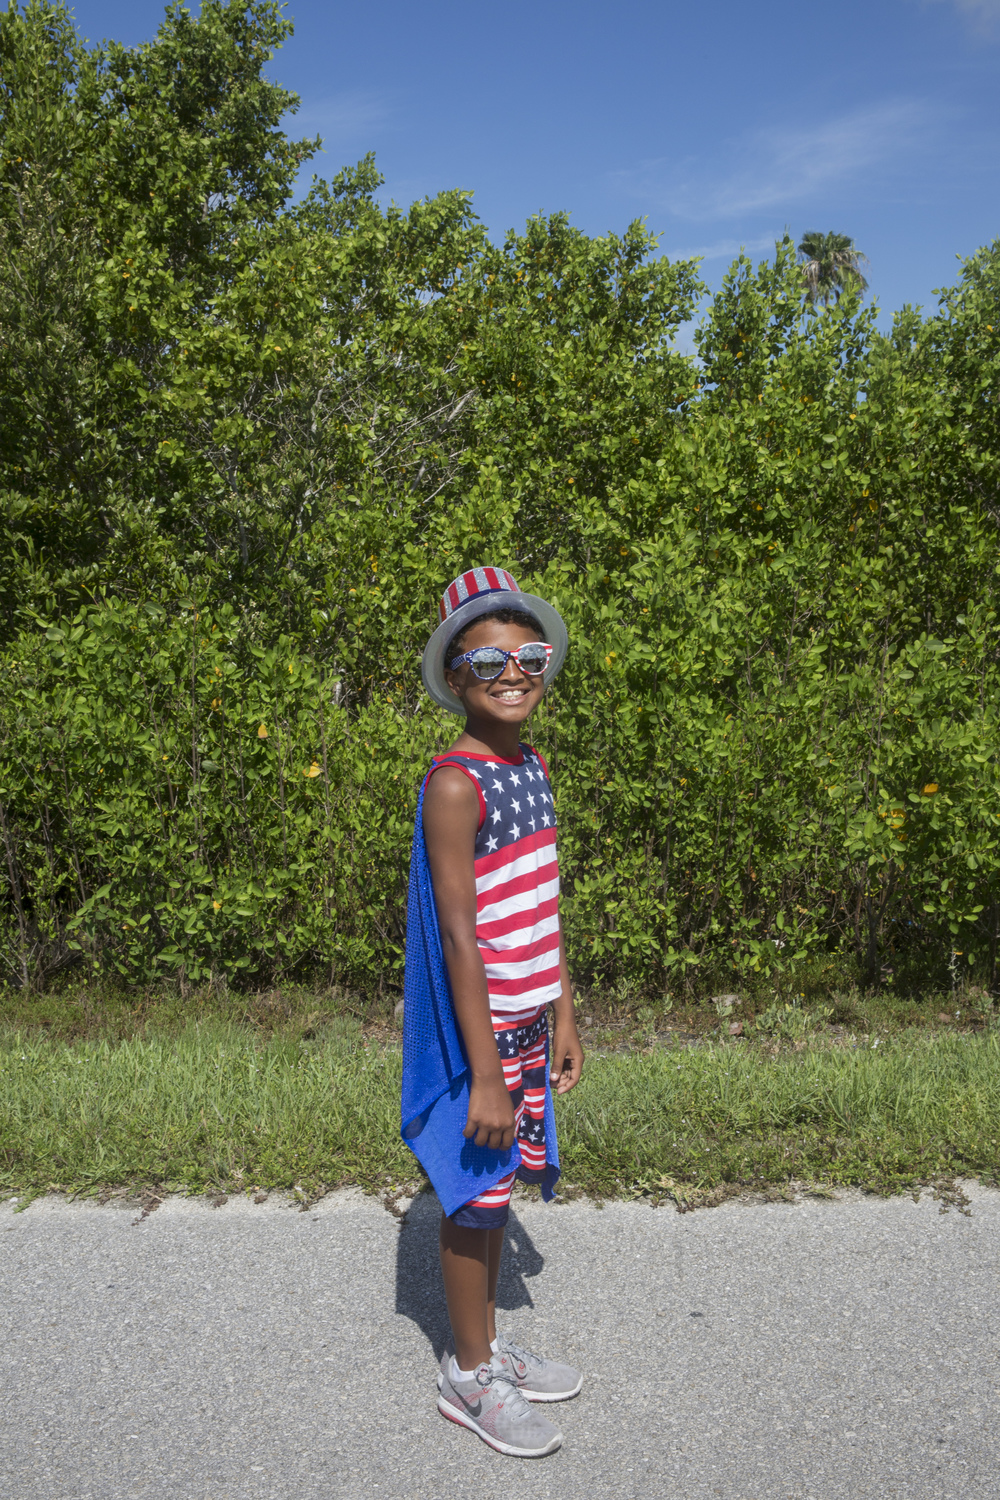 Ethan Pantoja, 9, of Naples, poses for a portrait wearing his most patriotic outfit during the early-bird Fourth of July Parade on July 2, 2015 in Everglades City, Florida. The festivities included the parade through downtown, a doggie parade, and a Mr. and Mrs. Fire Cracker contest.